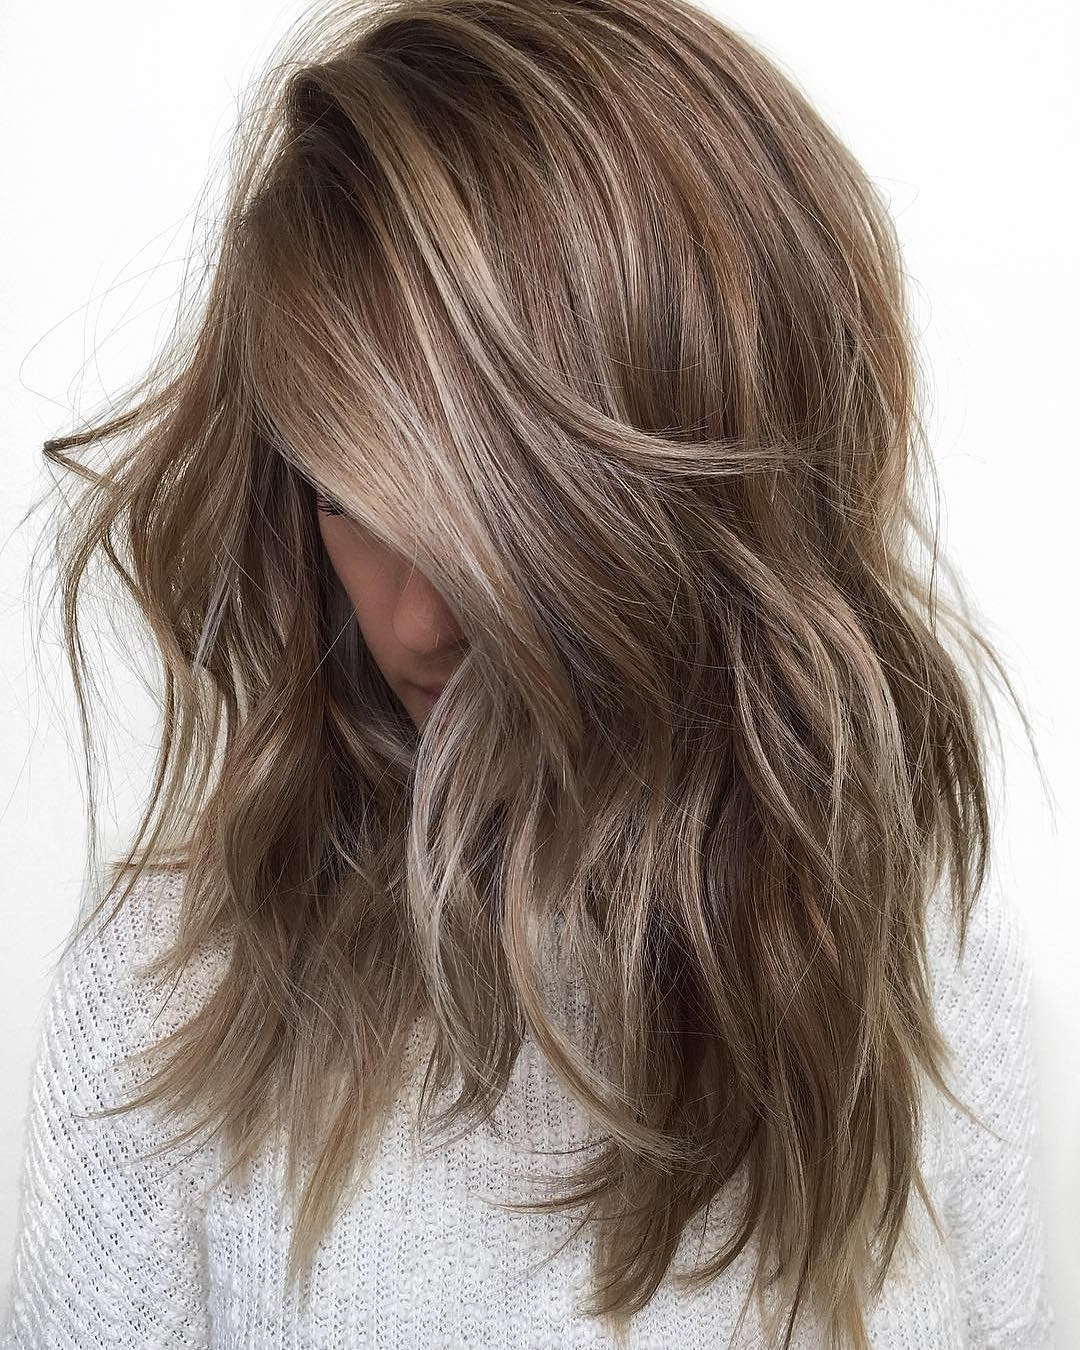 10 Balayage Ombre Hair Styles For Shoulder Length Hair, Women In Latest Layered Ombre For Long Hairstyles (View 1 of 20)